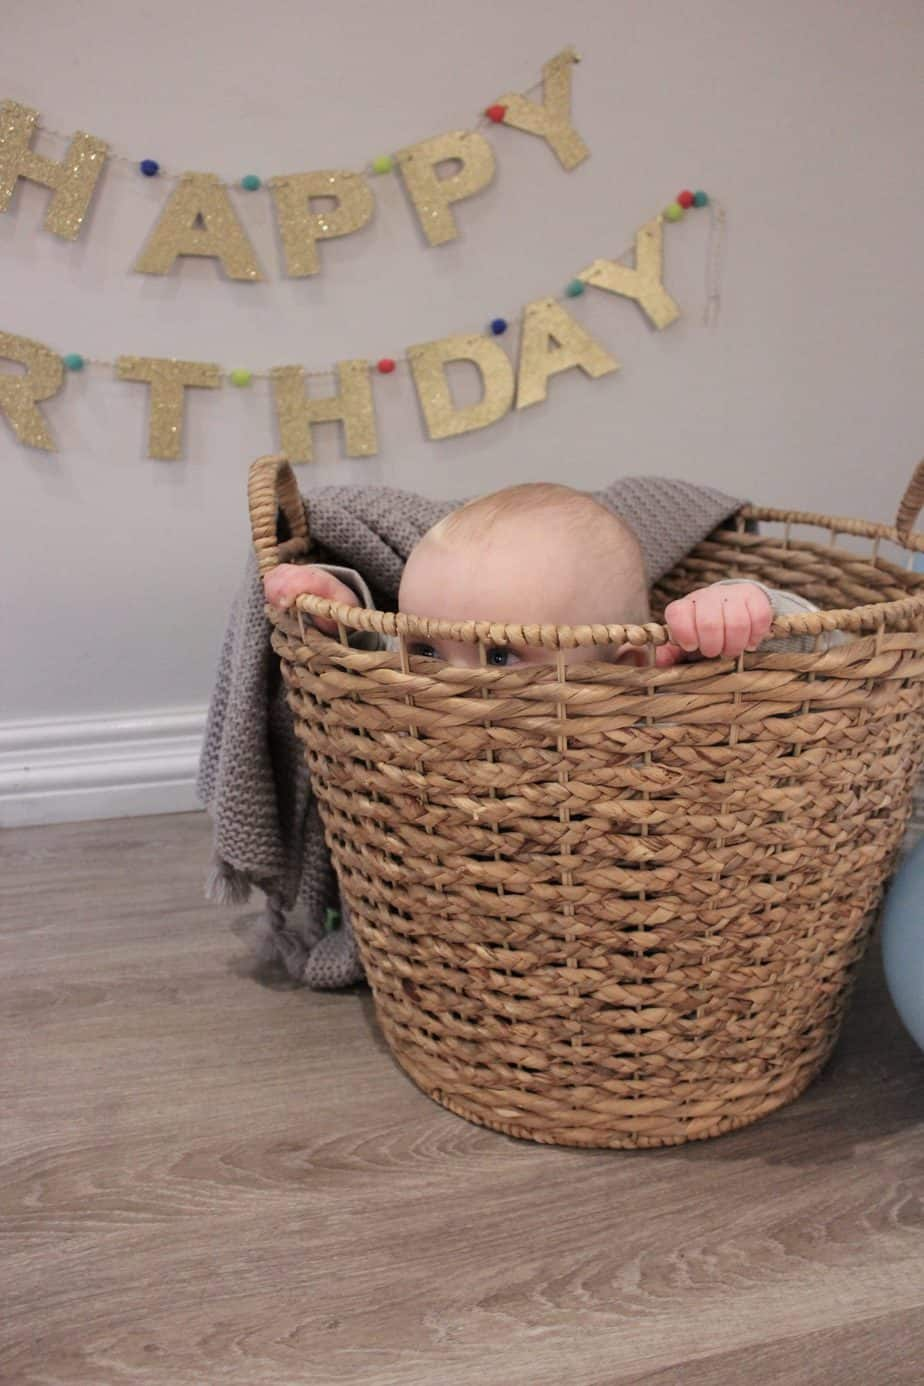 Baby K is peek a boo from the wicker basket on his cake smash shoot